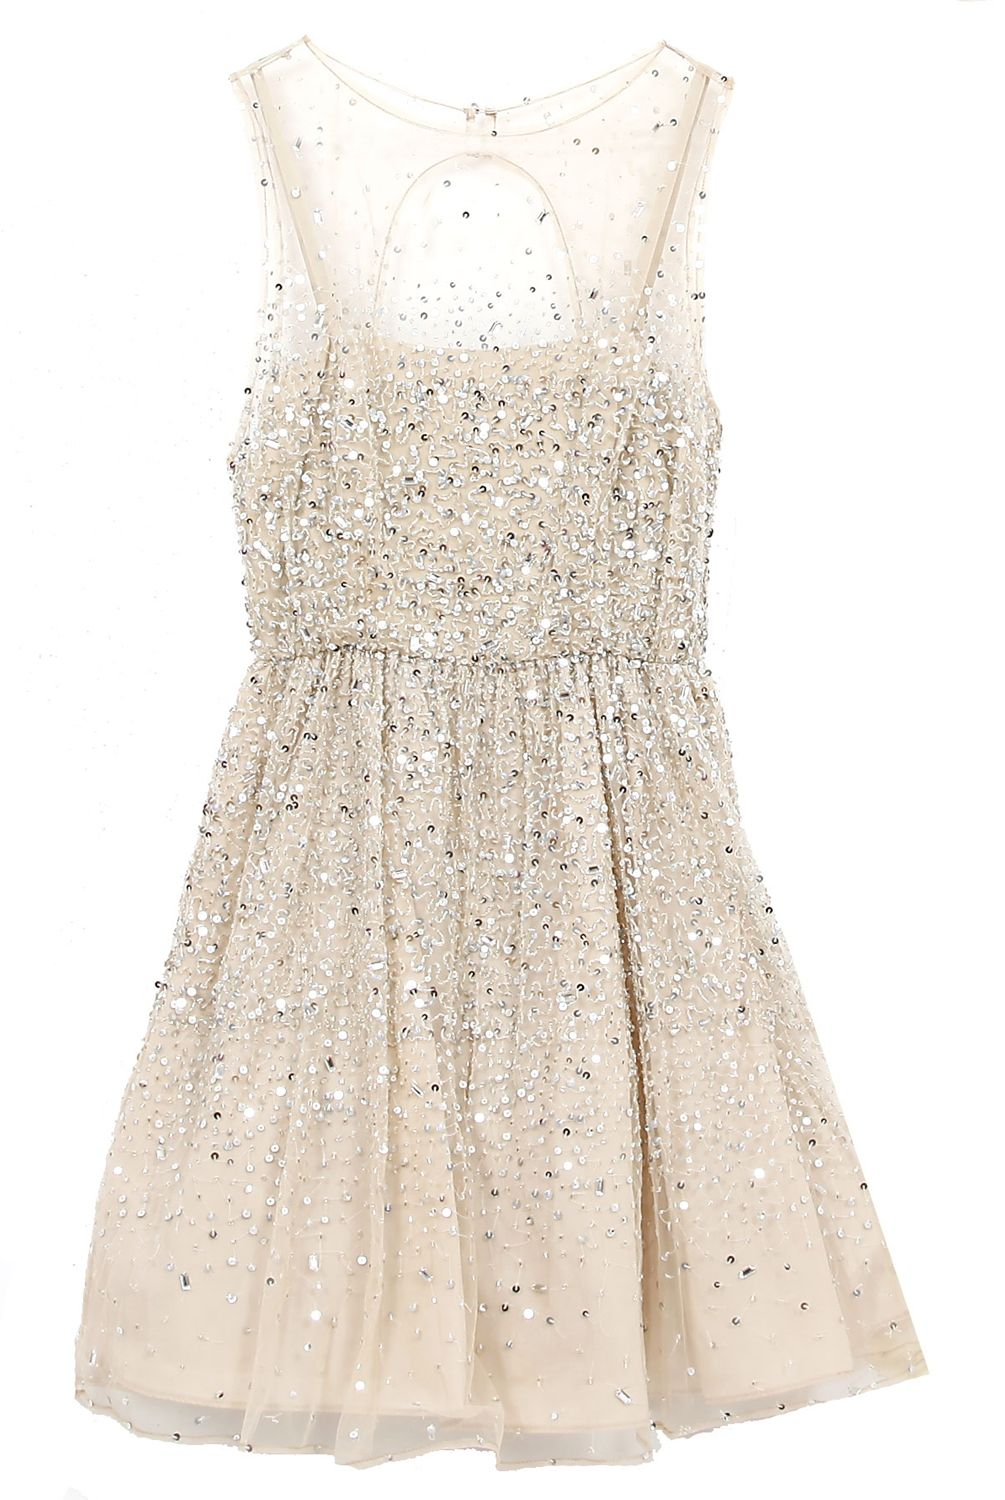 Alice + Olivia nude sparkles dress